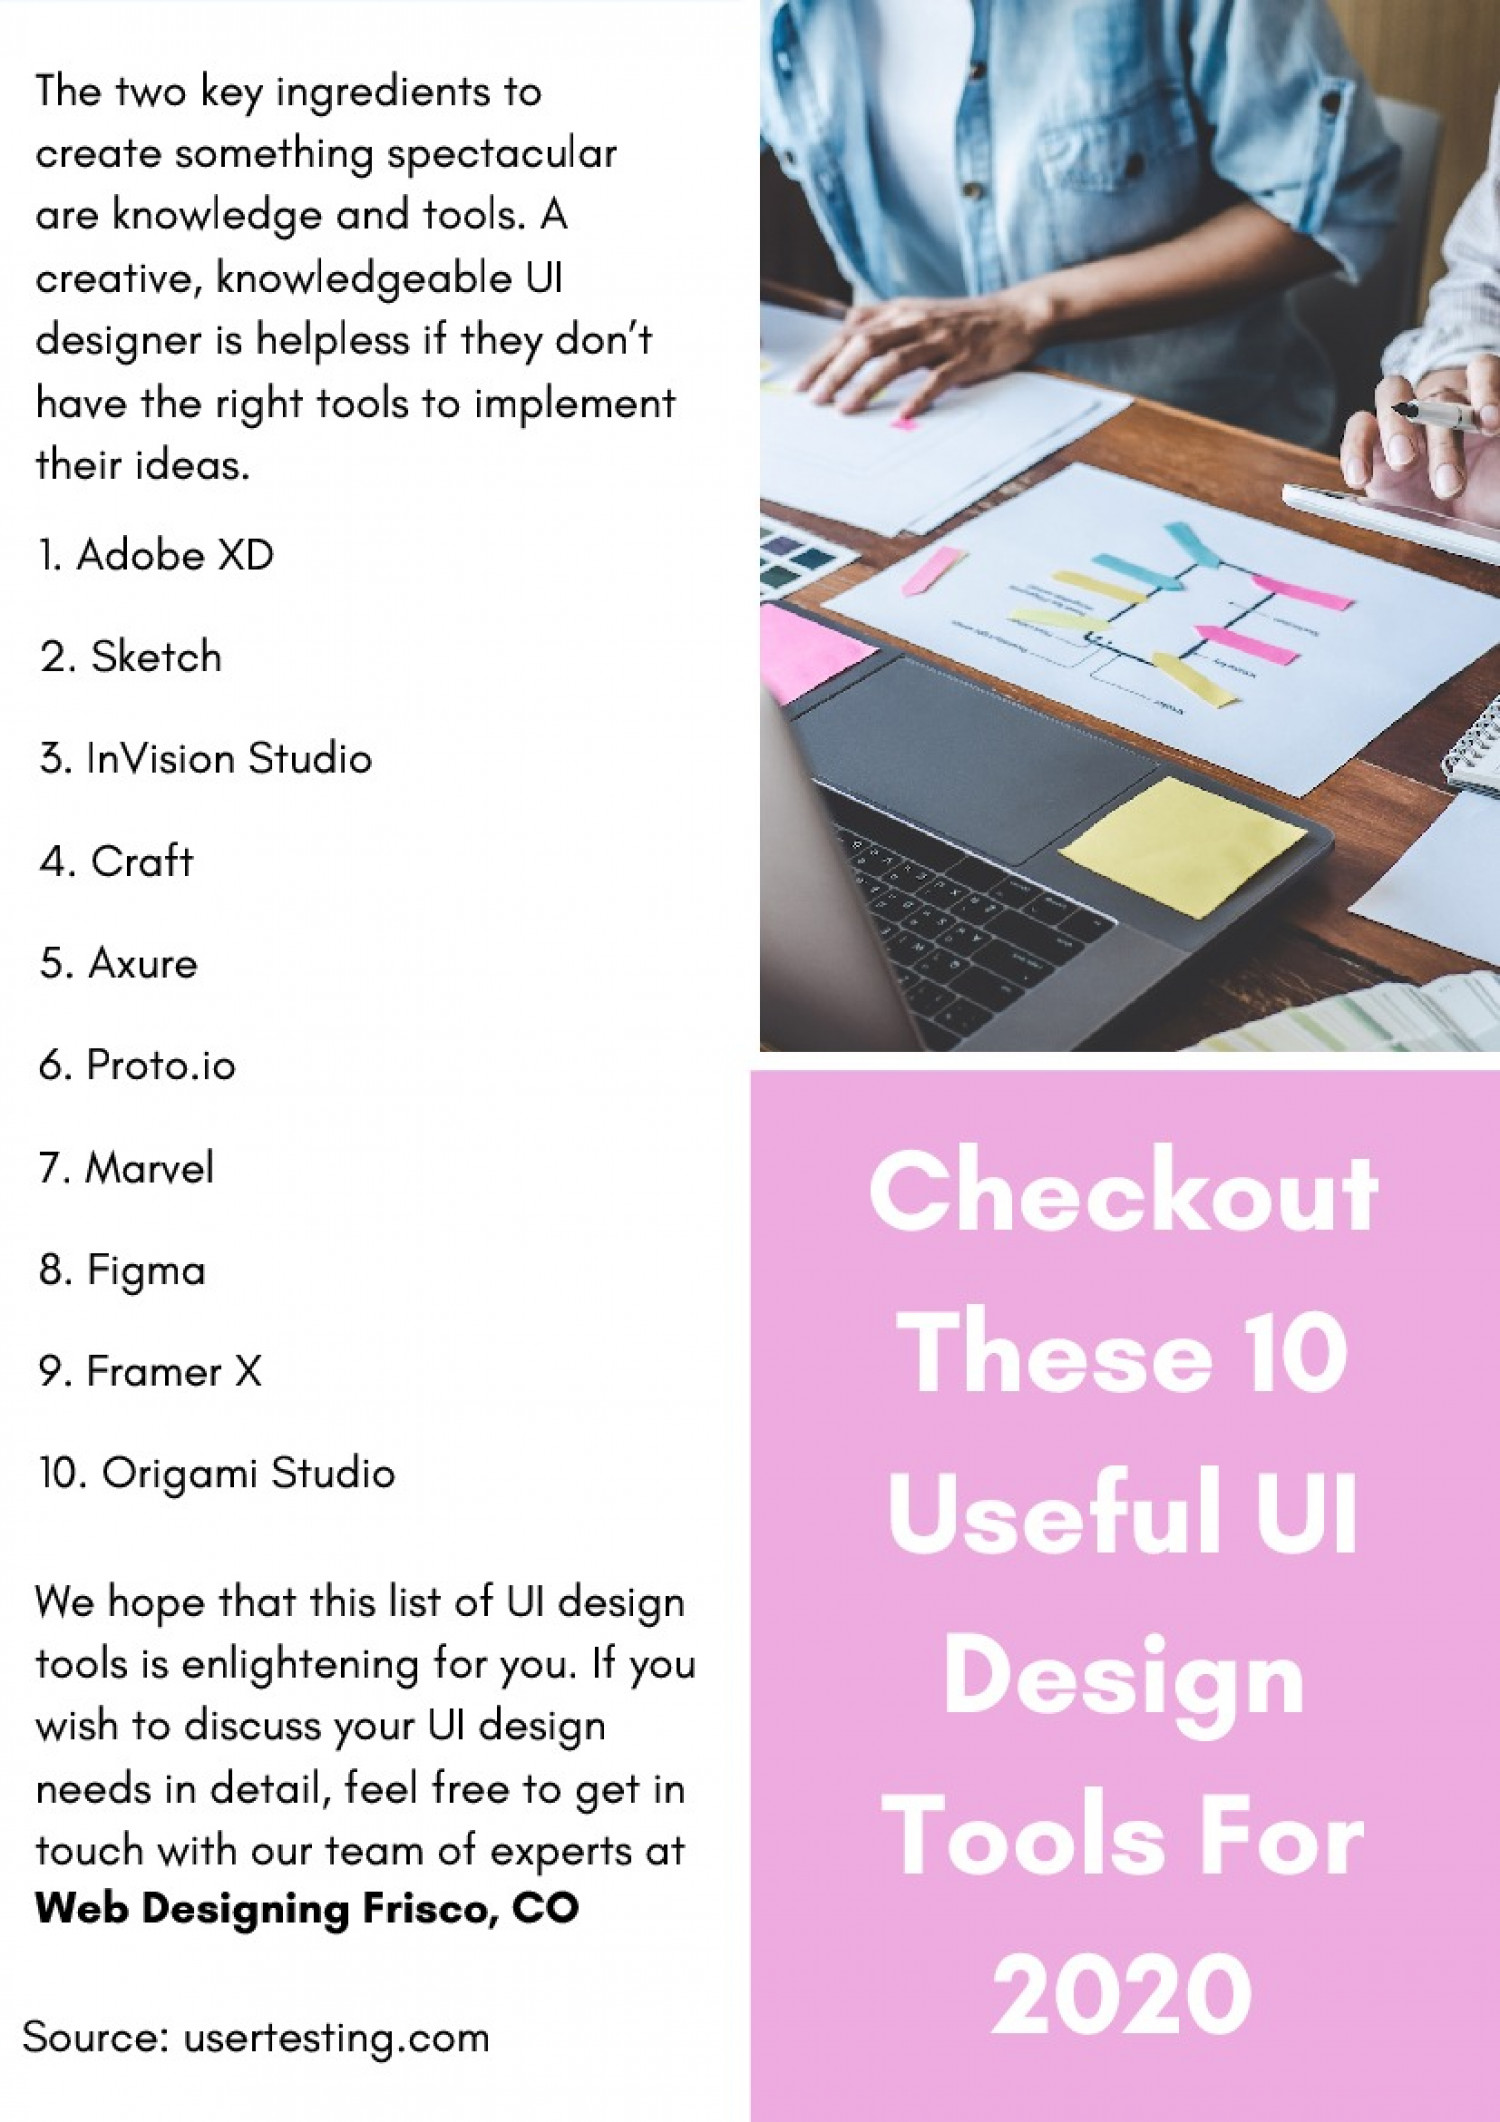 Checkout These 10 Useful UI Design Tools For 2020 Infographic